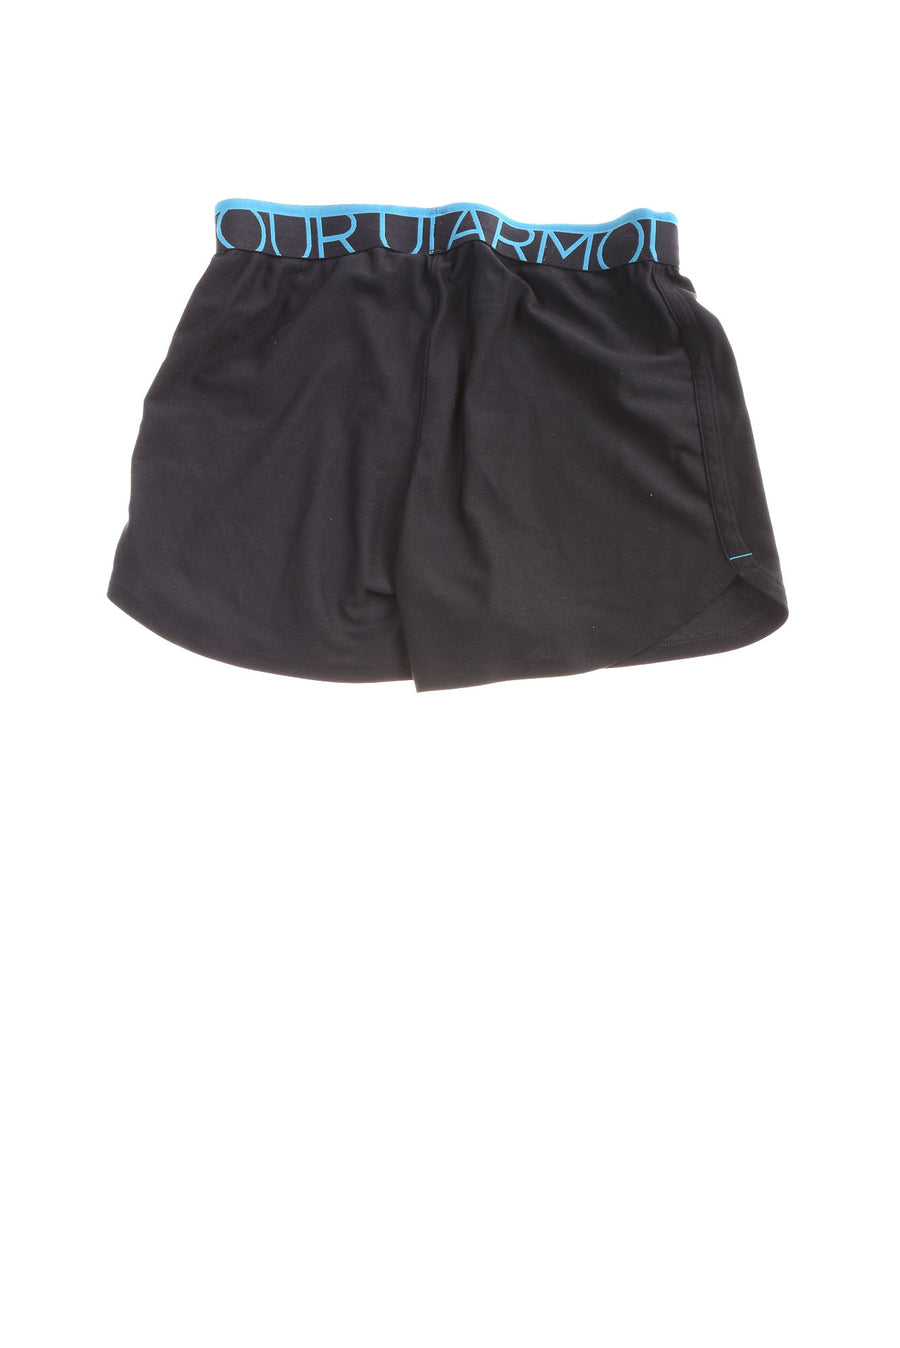 USED Under Armour Girl's Shorts Large Black